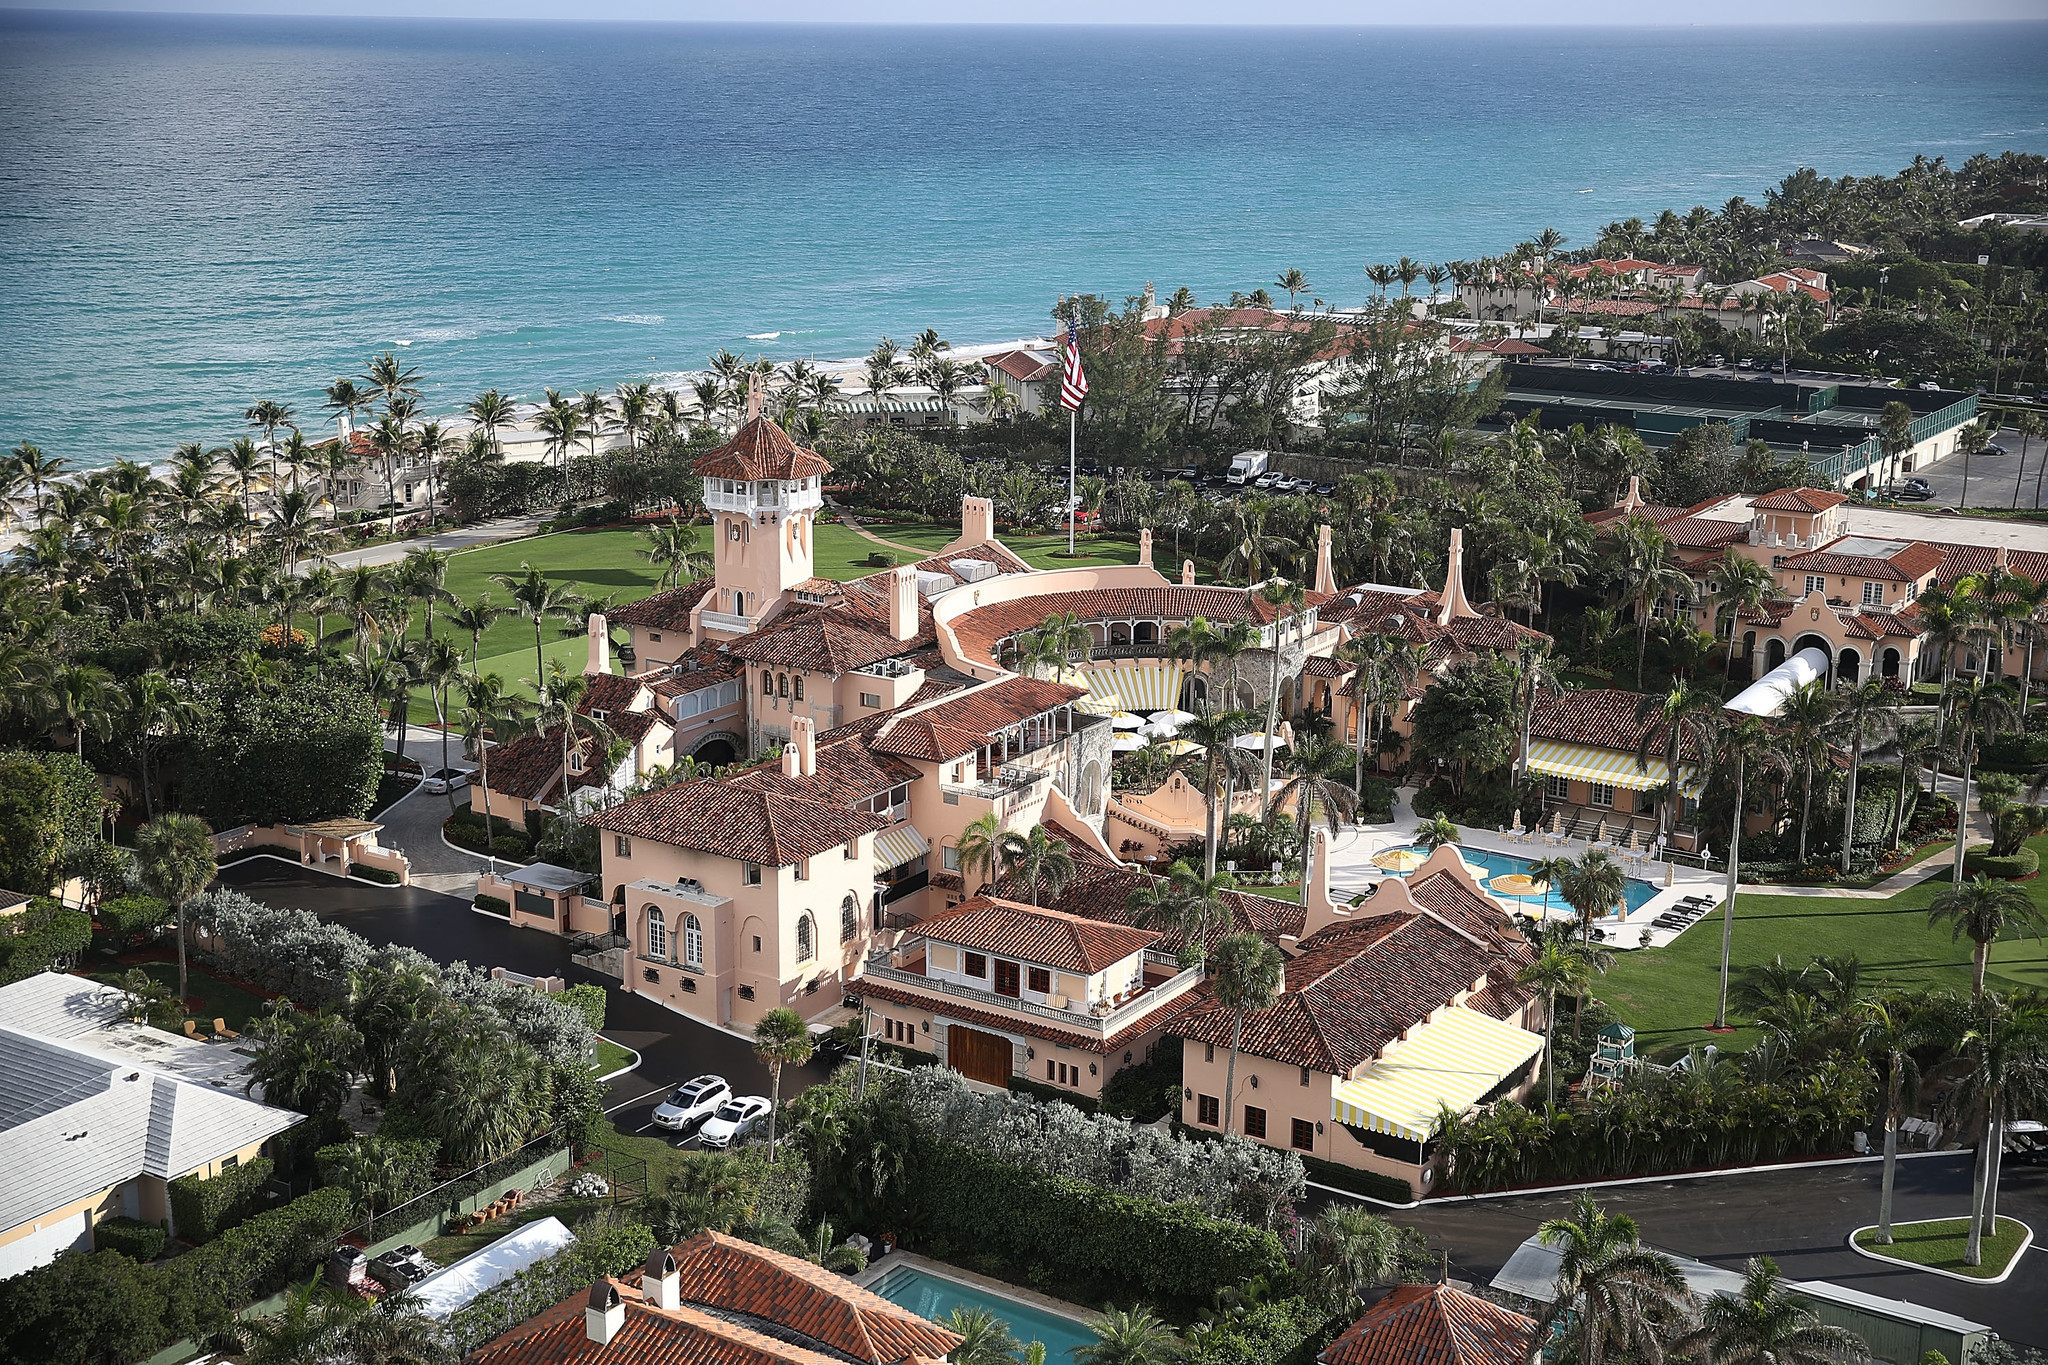 Most Charities That Deserted Trump S Mar A Lago After